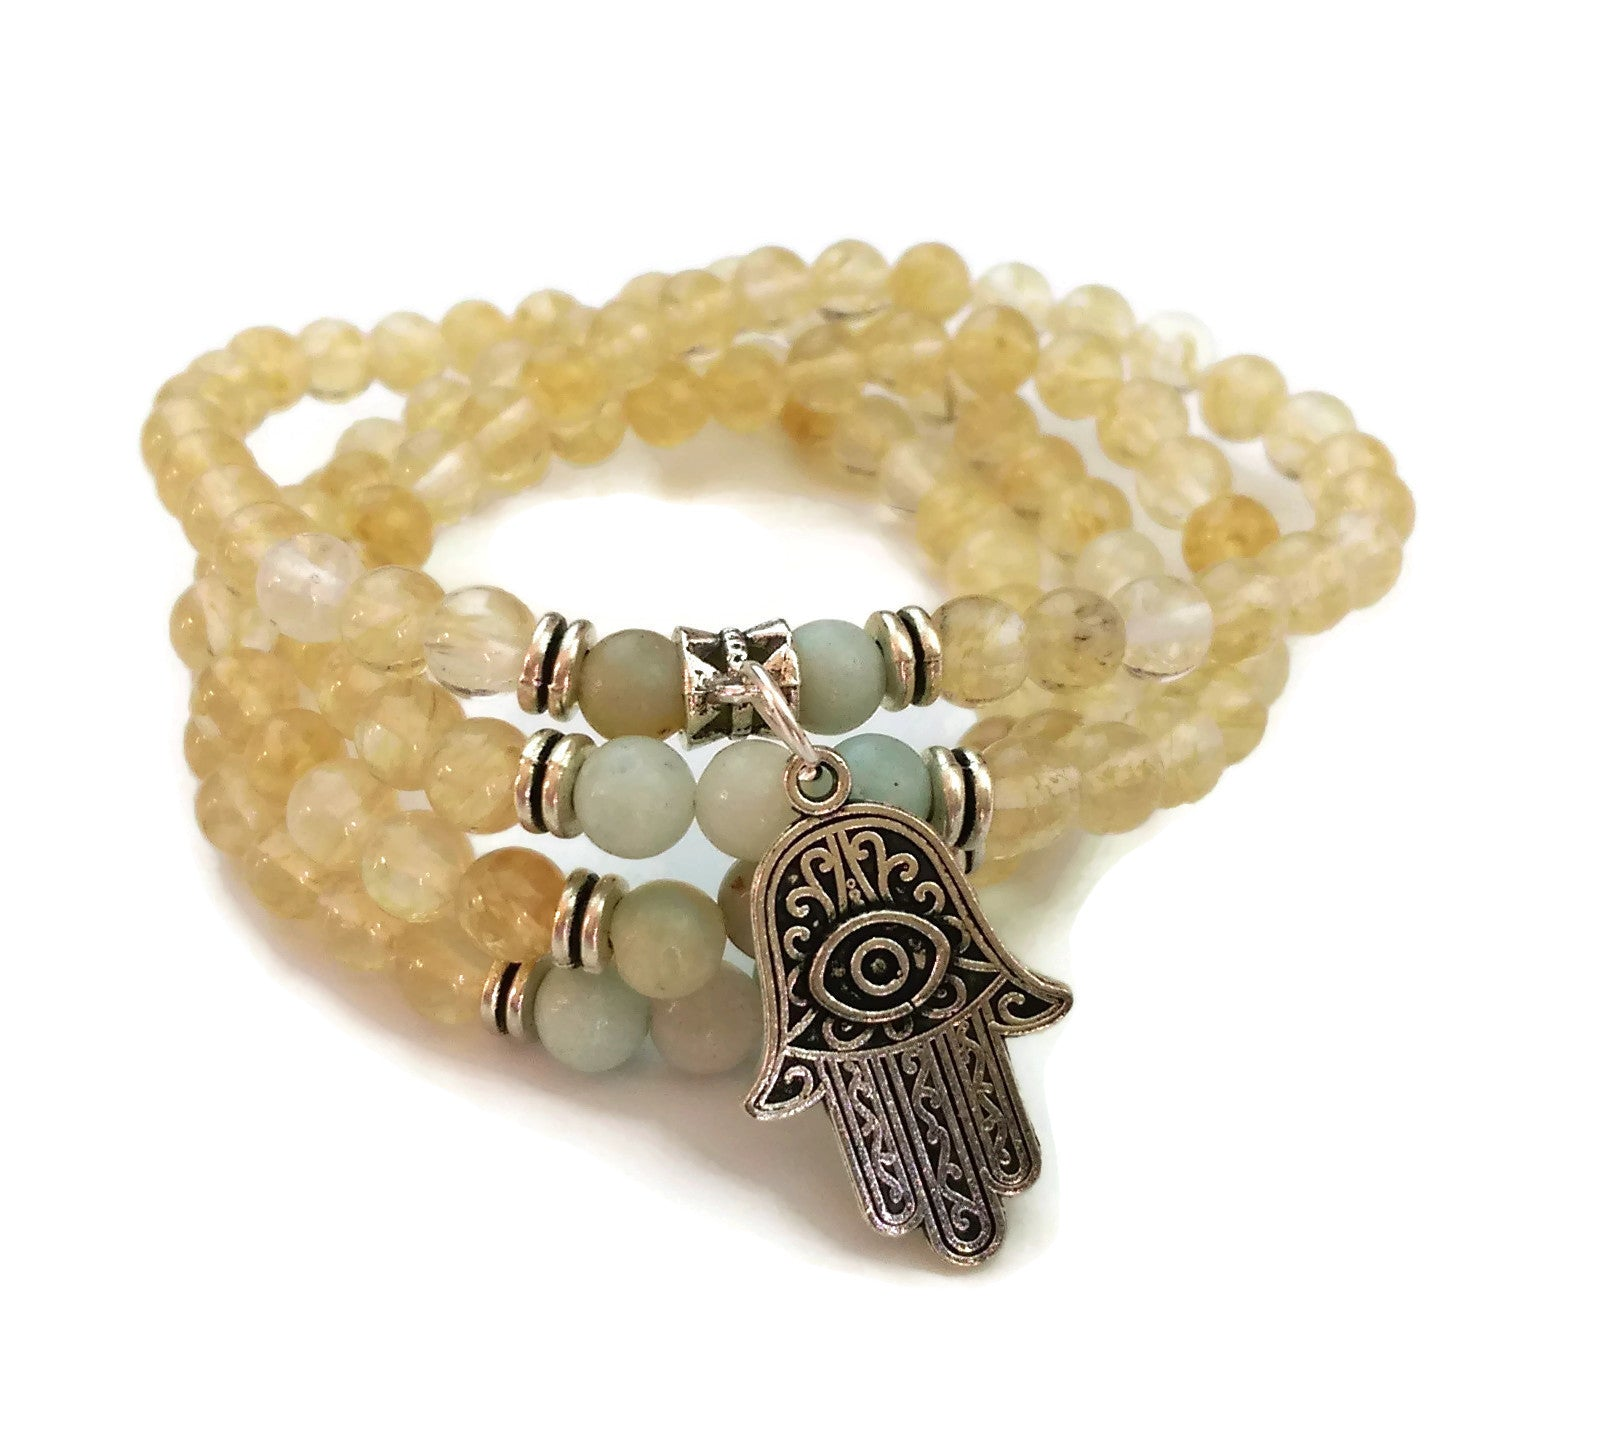 6mm Crystal and Amazonite with 925 Silver Wrist Wrap Mala Bracelet with Hamsa Charm